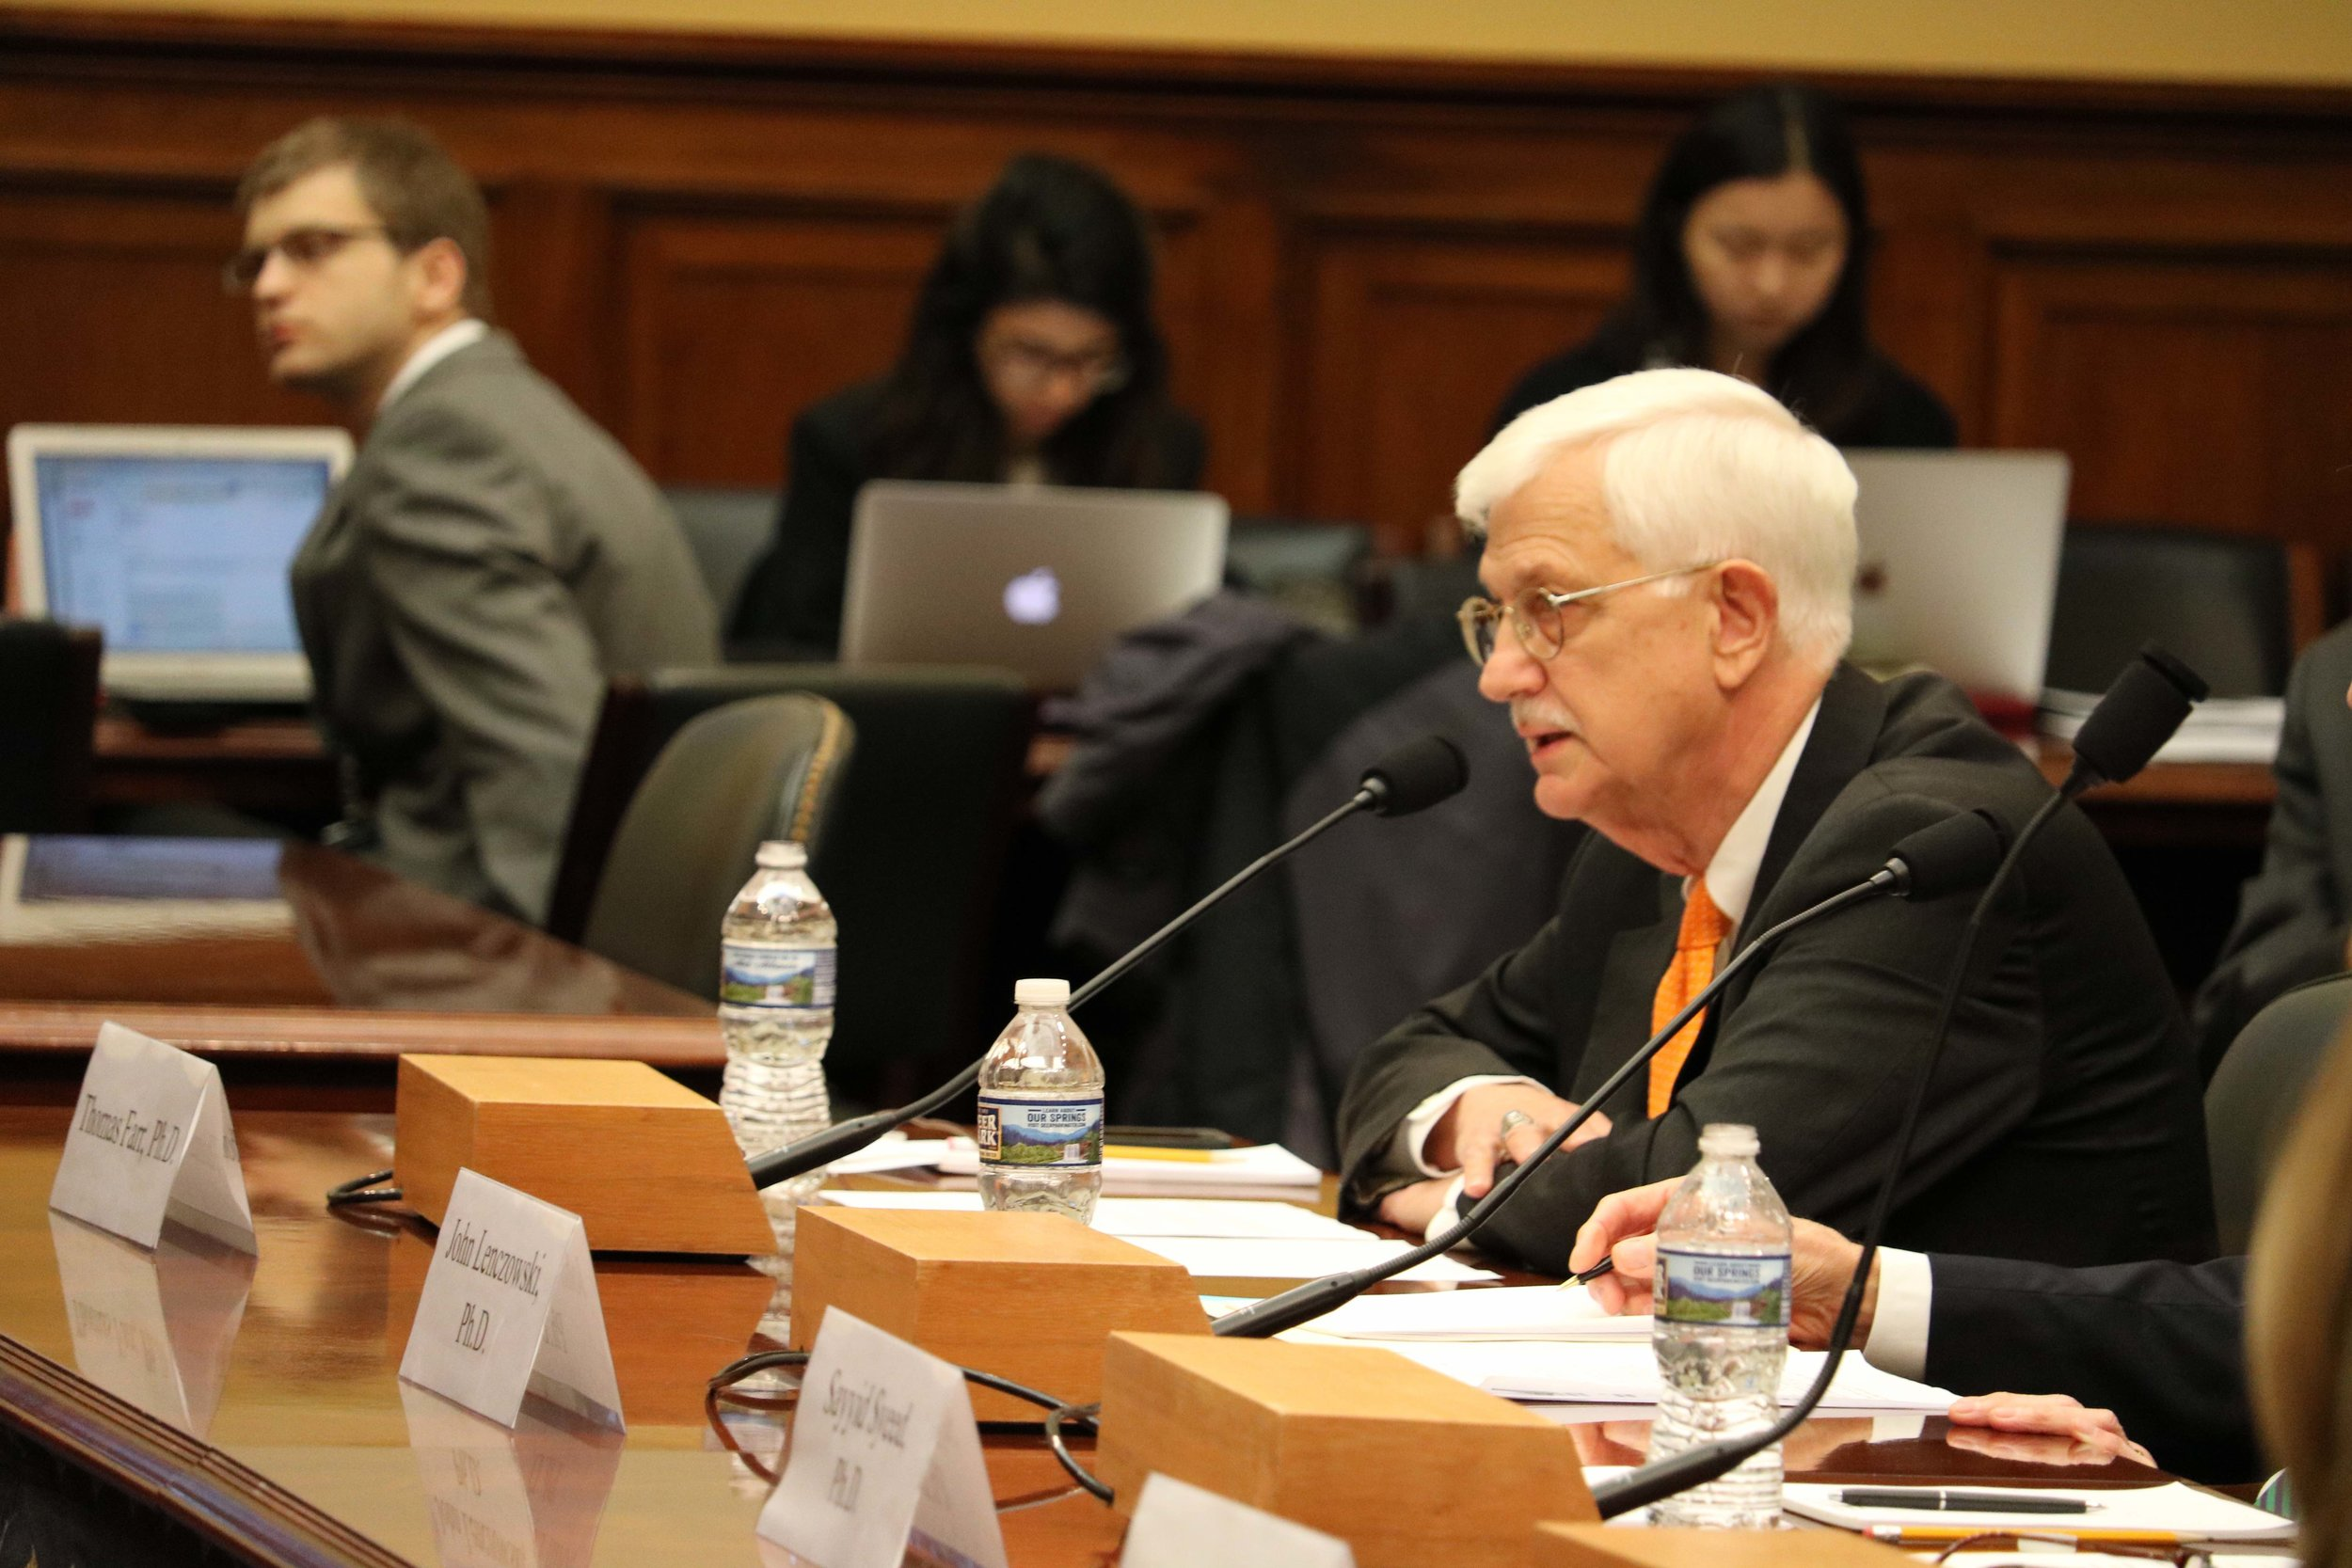 Thomas Farr testifies before the Subcommittee on Africa, Global Health, Global Human Rights, and International Organizations of the House Foreign Affairs Committee, December 6, 2017. Photo: RFI/Jeremy Barker